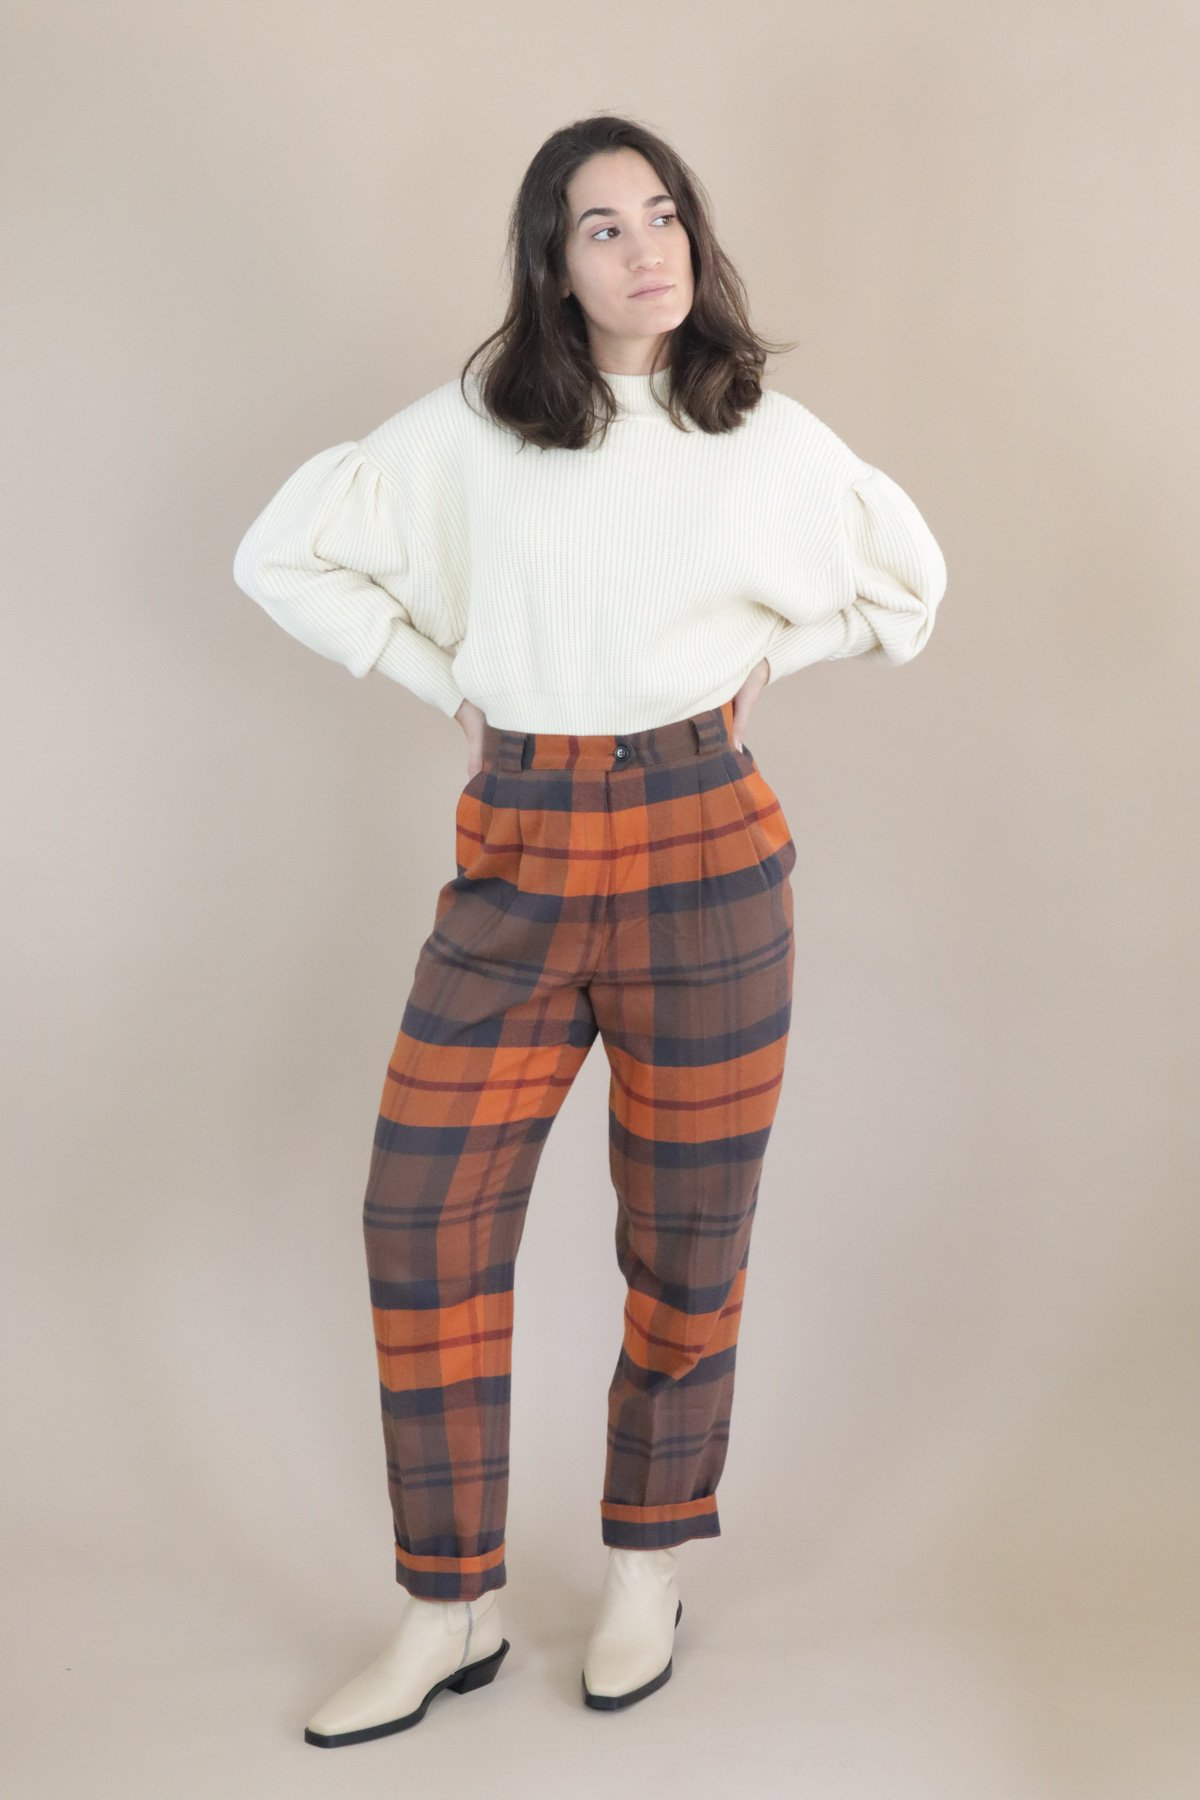 80s Outfit Inspiration, Party Ideas Rita Row Guri Trousers - Checkered $122.00 AT vintagedancer.com